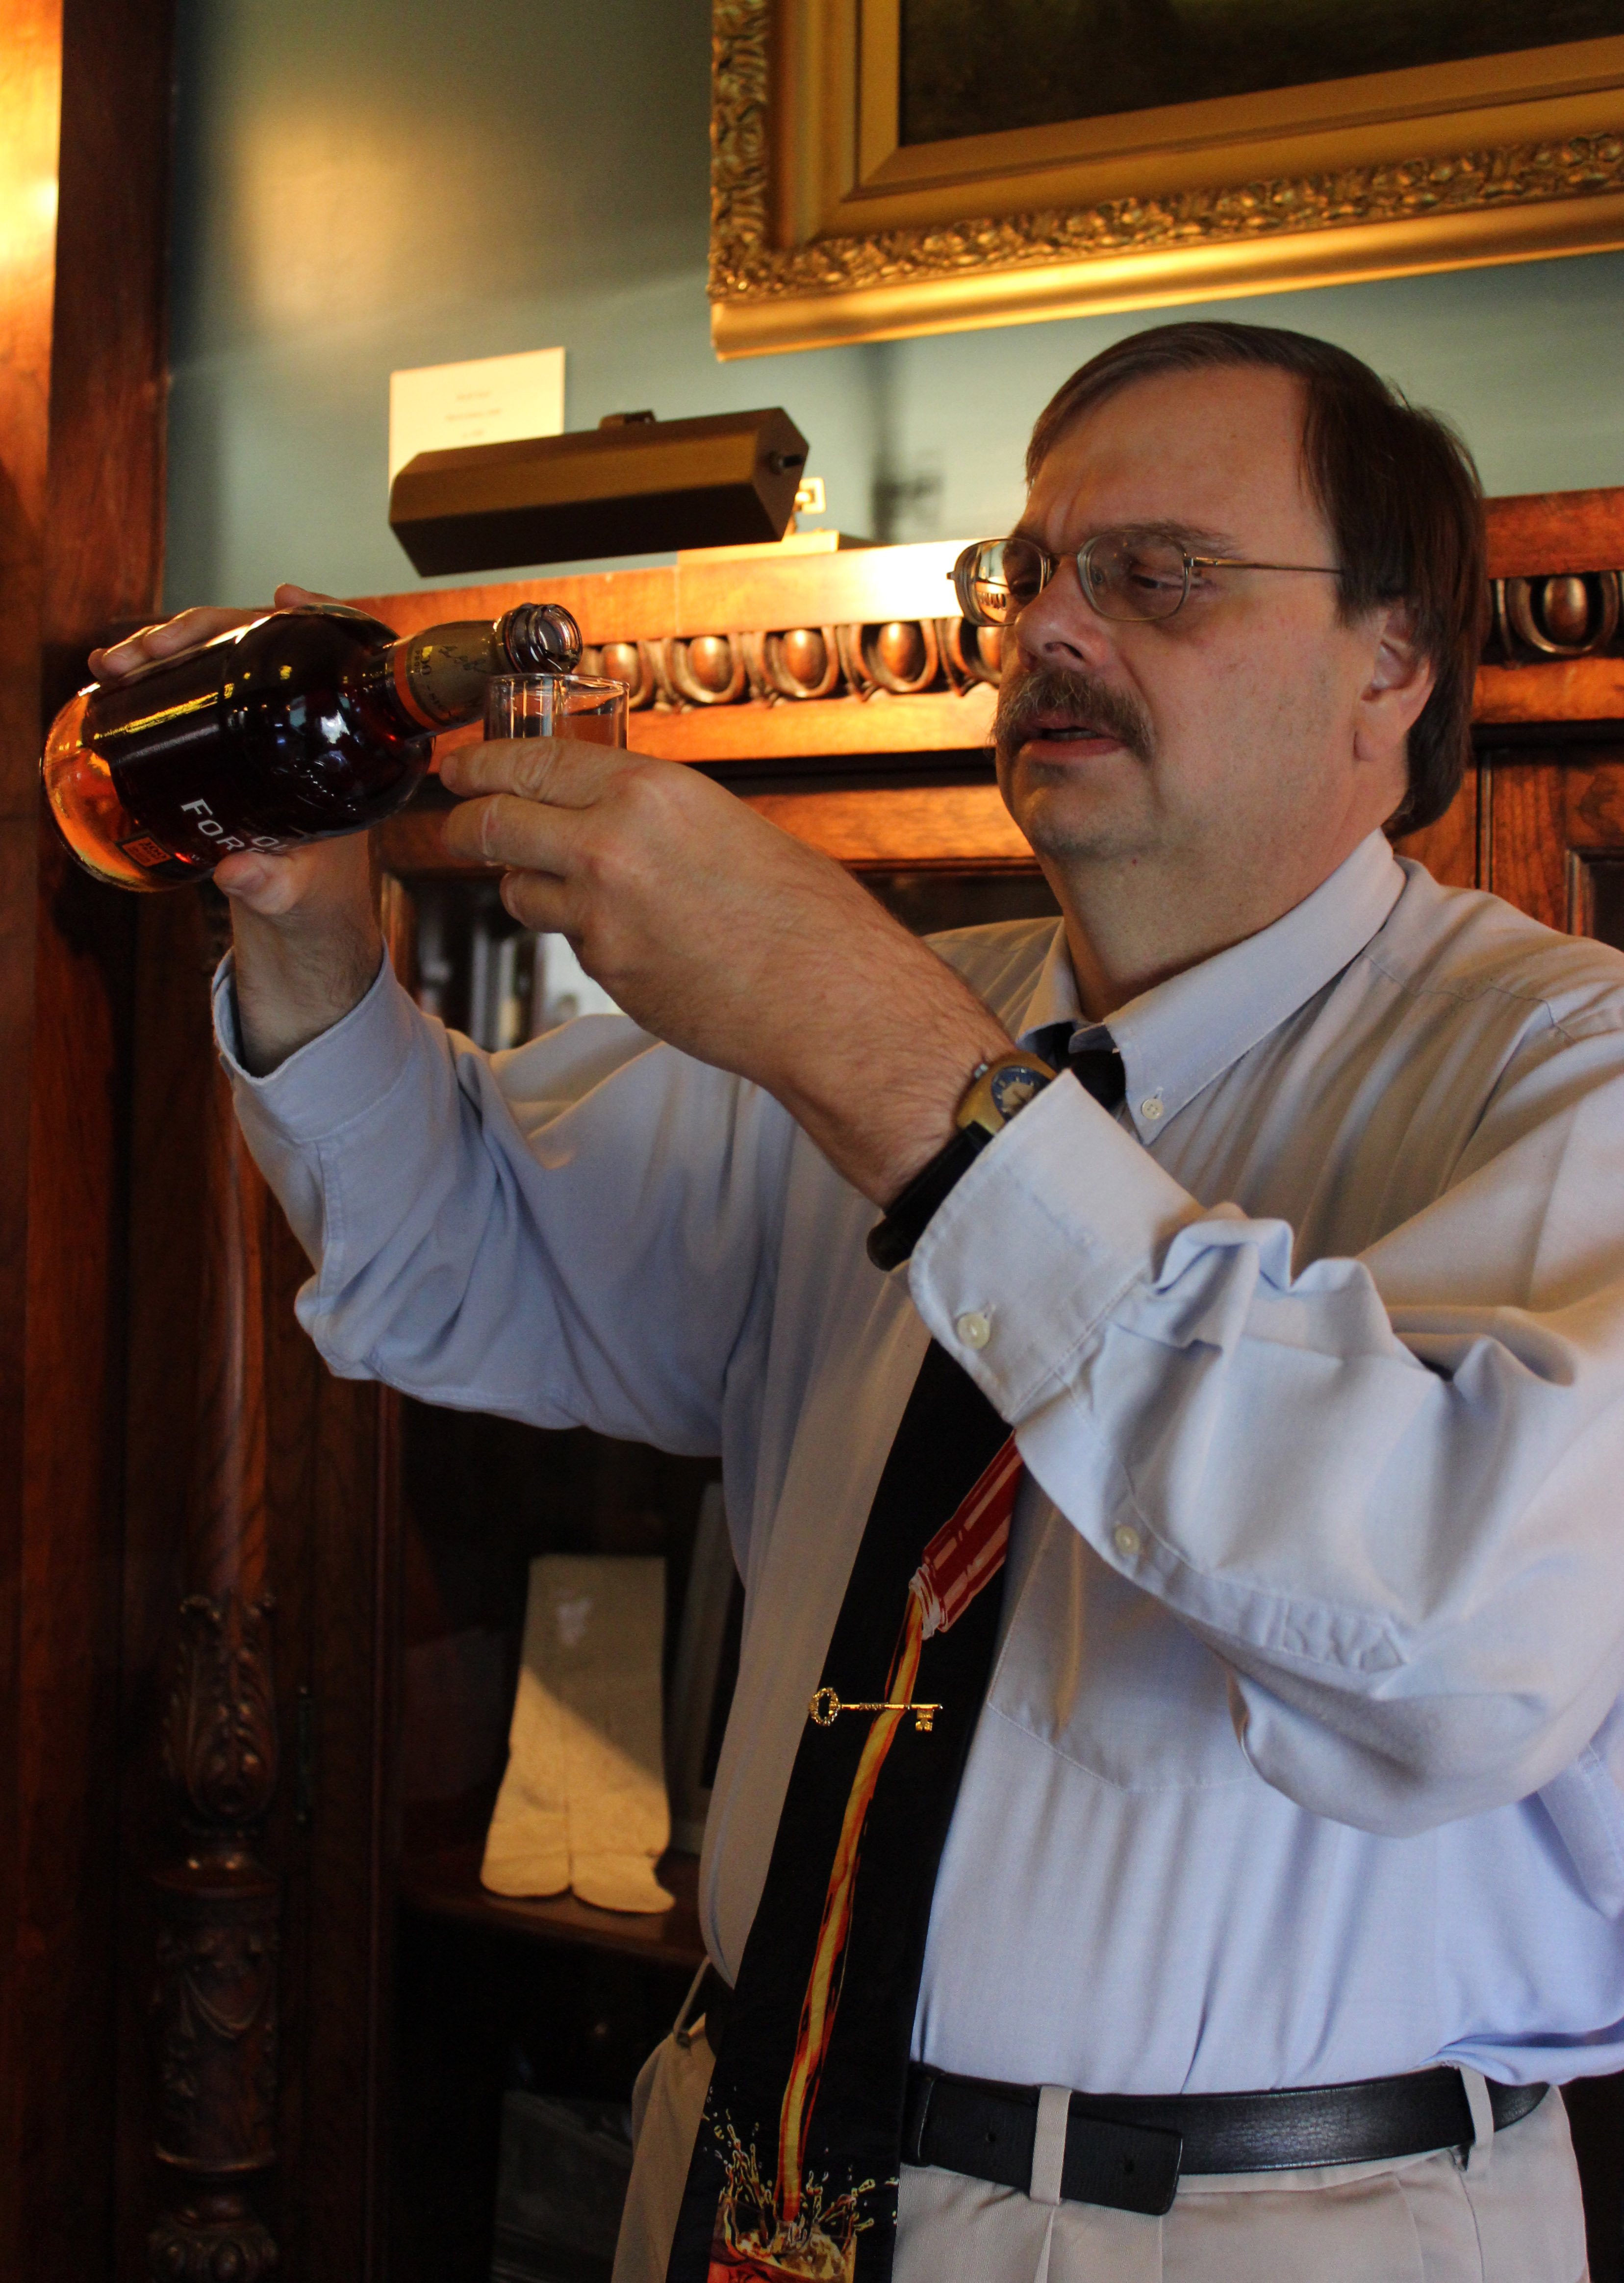 Mike Veach, bourbon historian, gave a talk on bourbon history and led the group through a tasting of the bourbons and whiskeys.